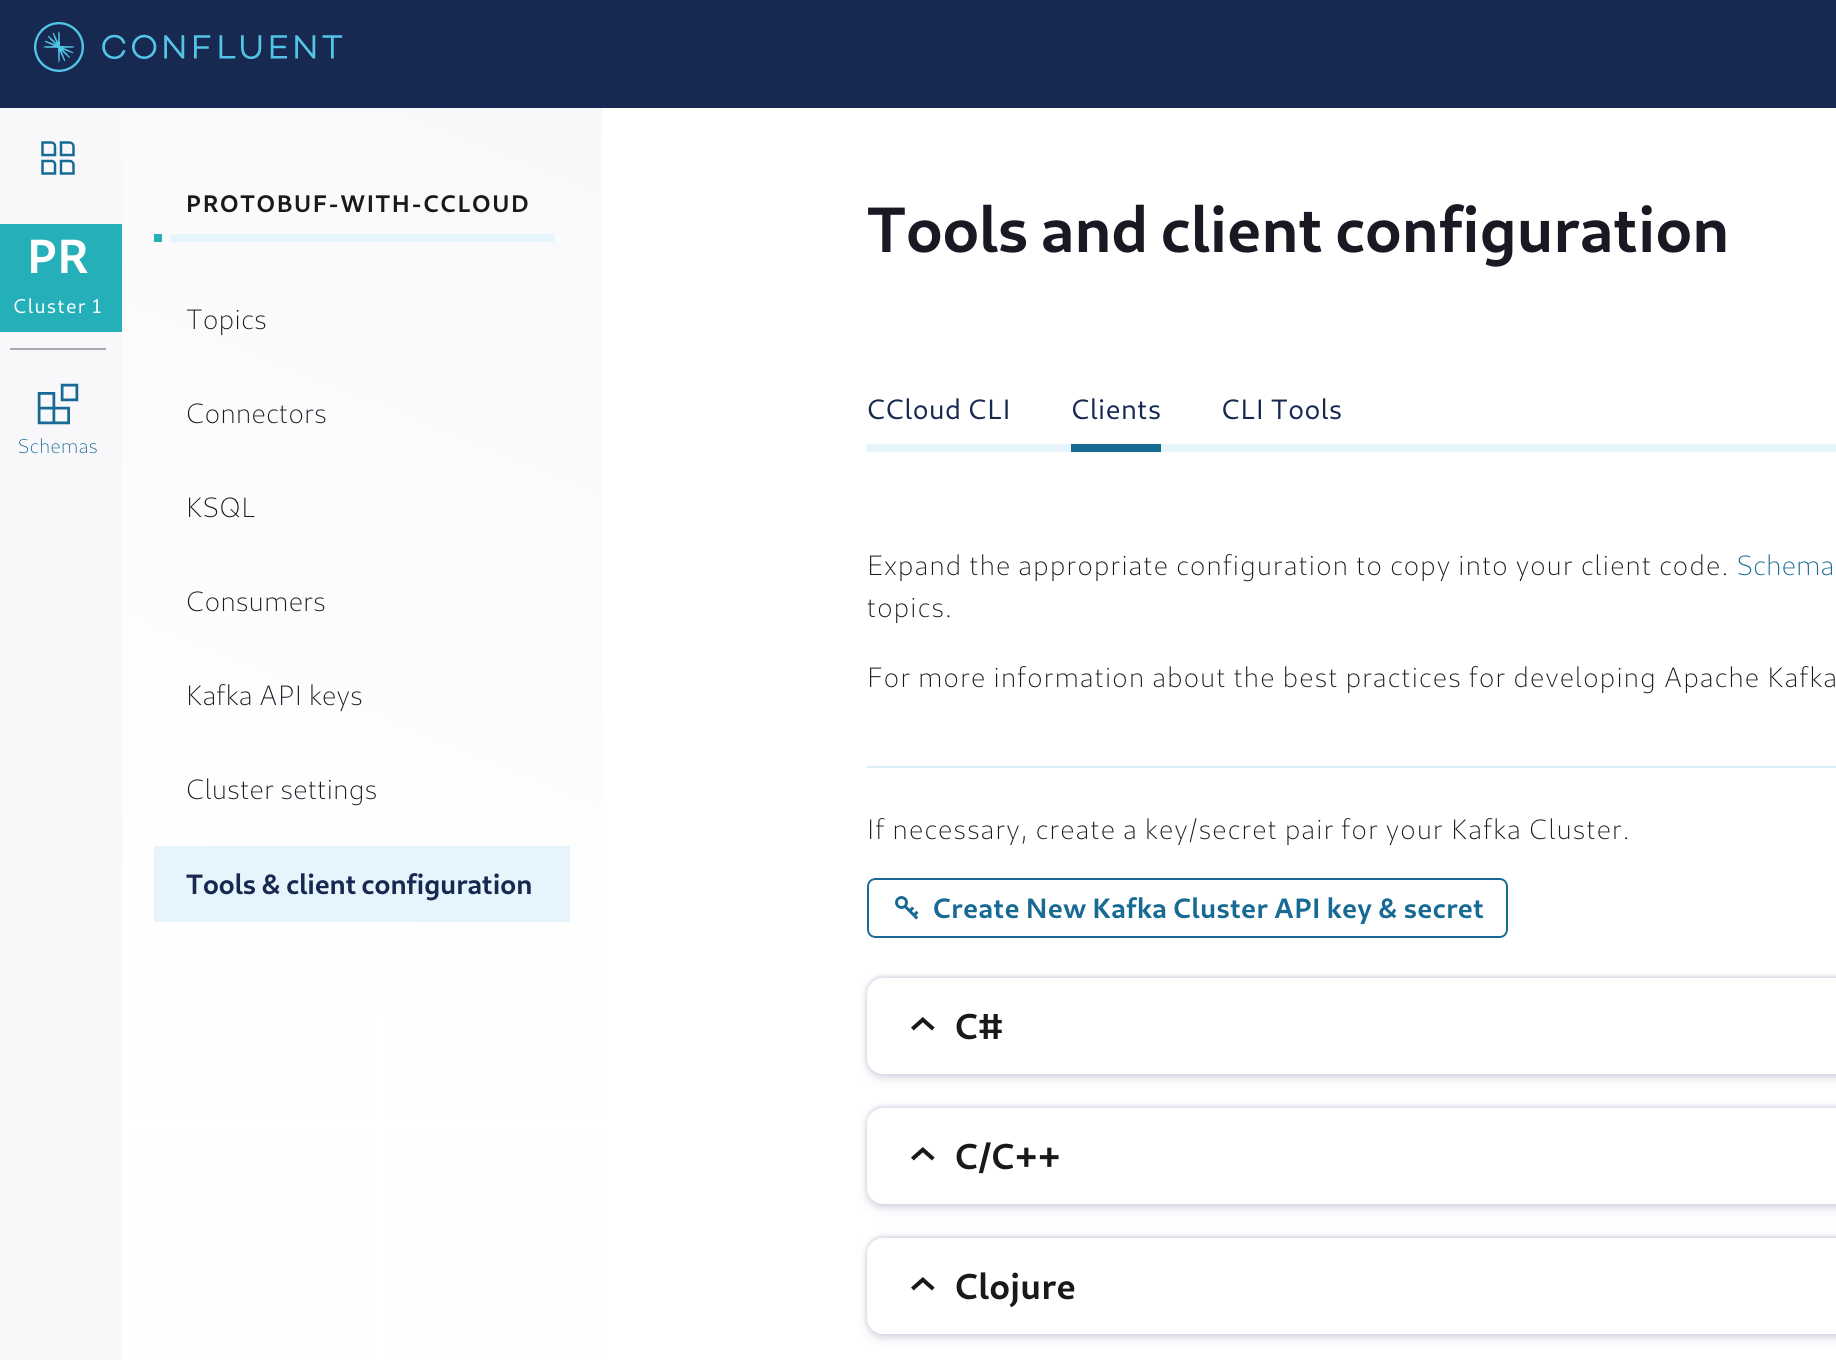 Generating the client configuration for the applications